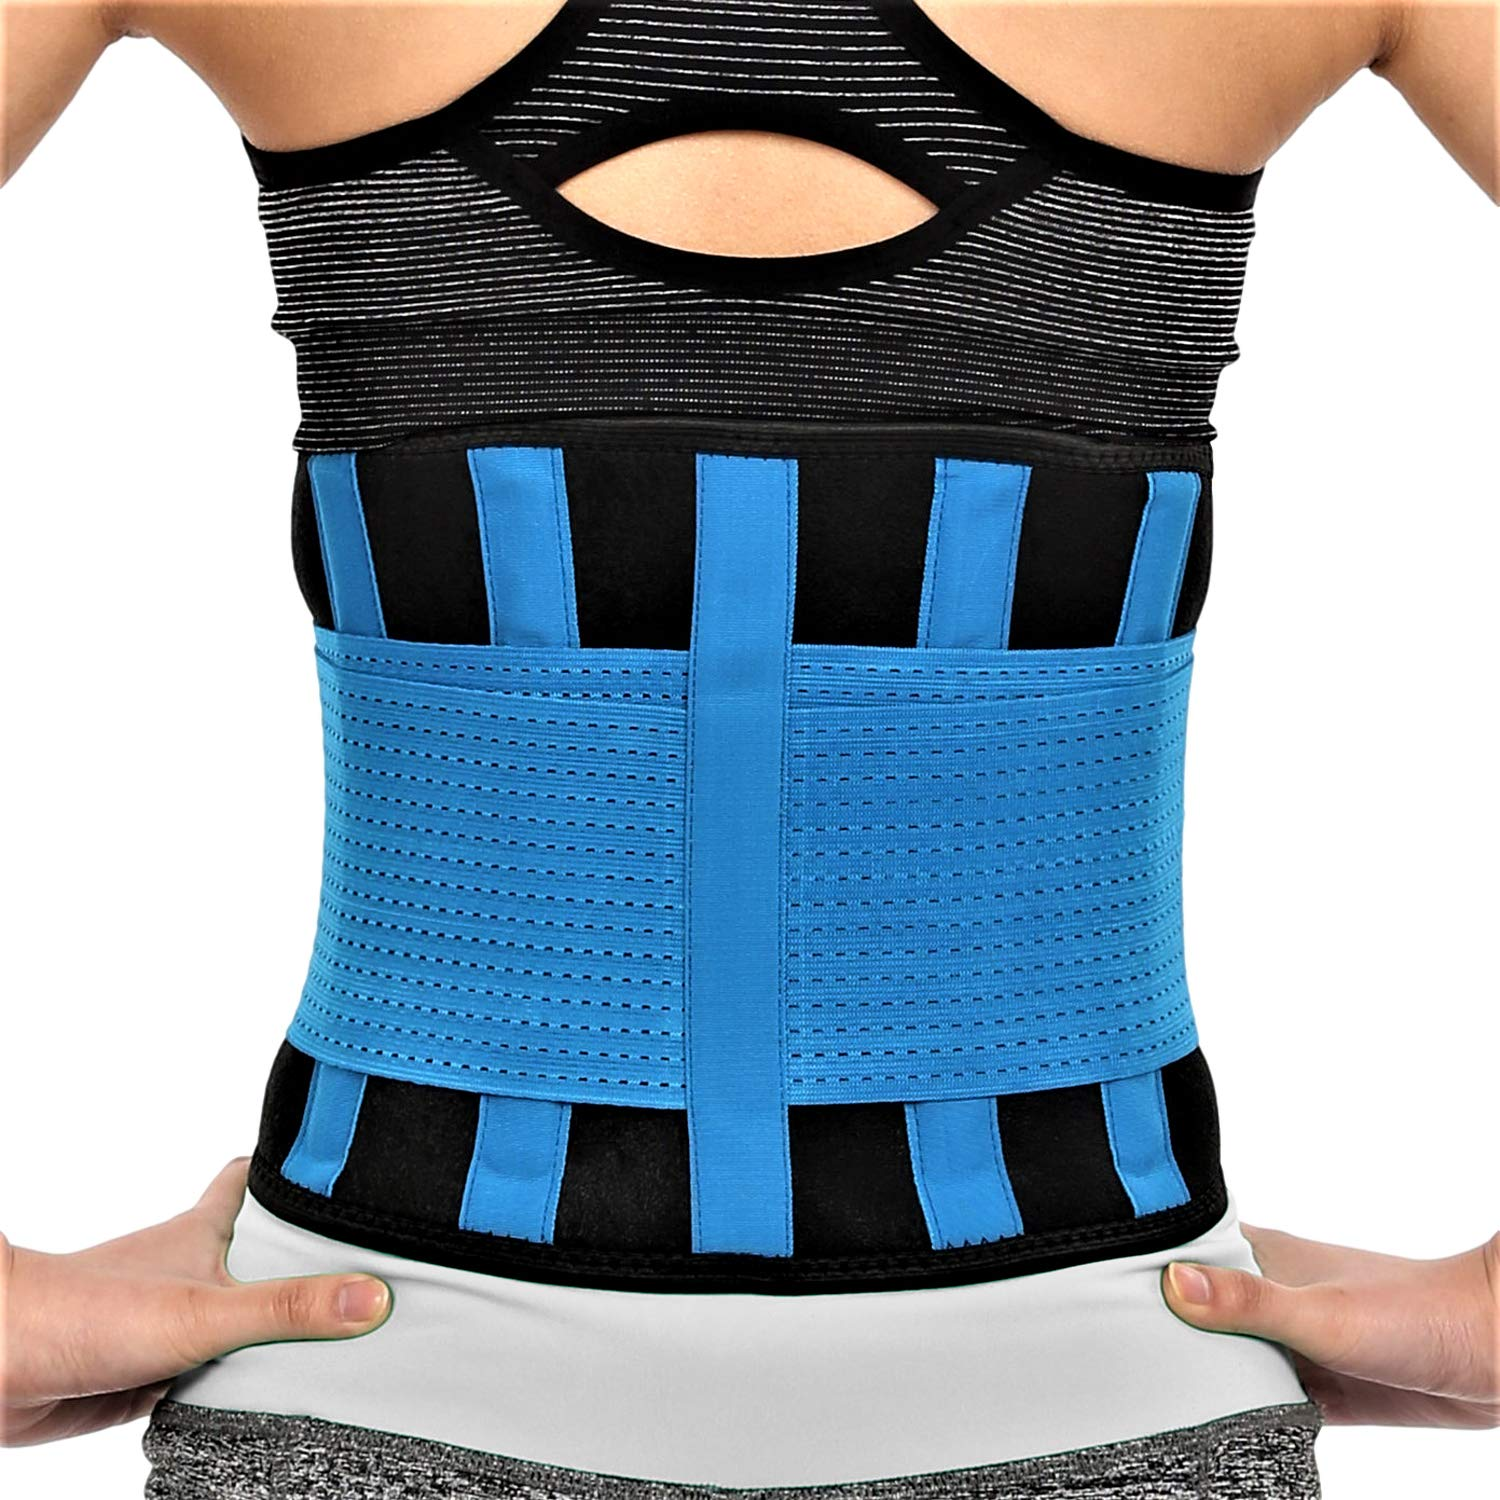 RiptGear Back Brace for Men and Women - Back Pain Relief Support for Lower Back Pain and Hip Pain - Lumbar Severe Back Pain Relief for Herniated Disc and Sciatica (Blue, Large) by RiptGear